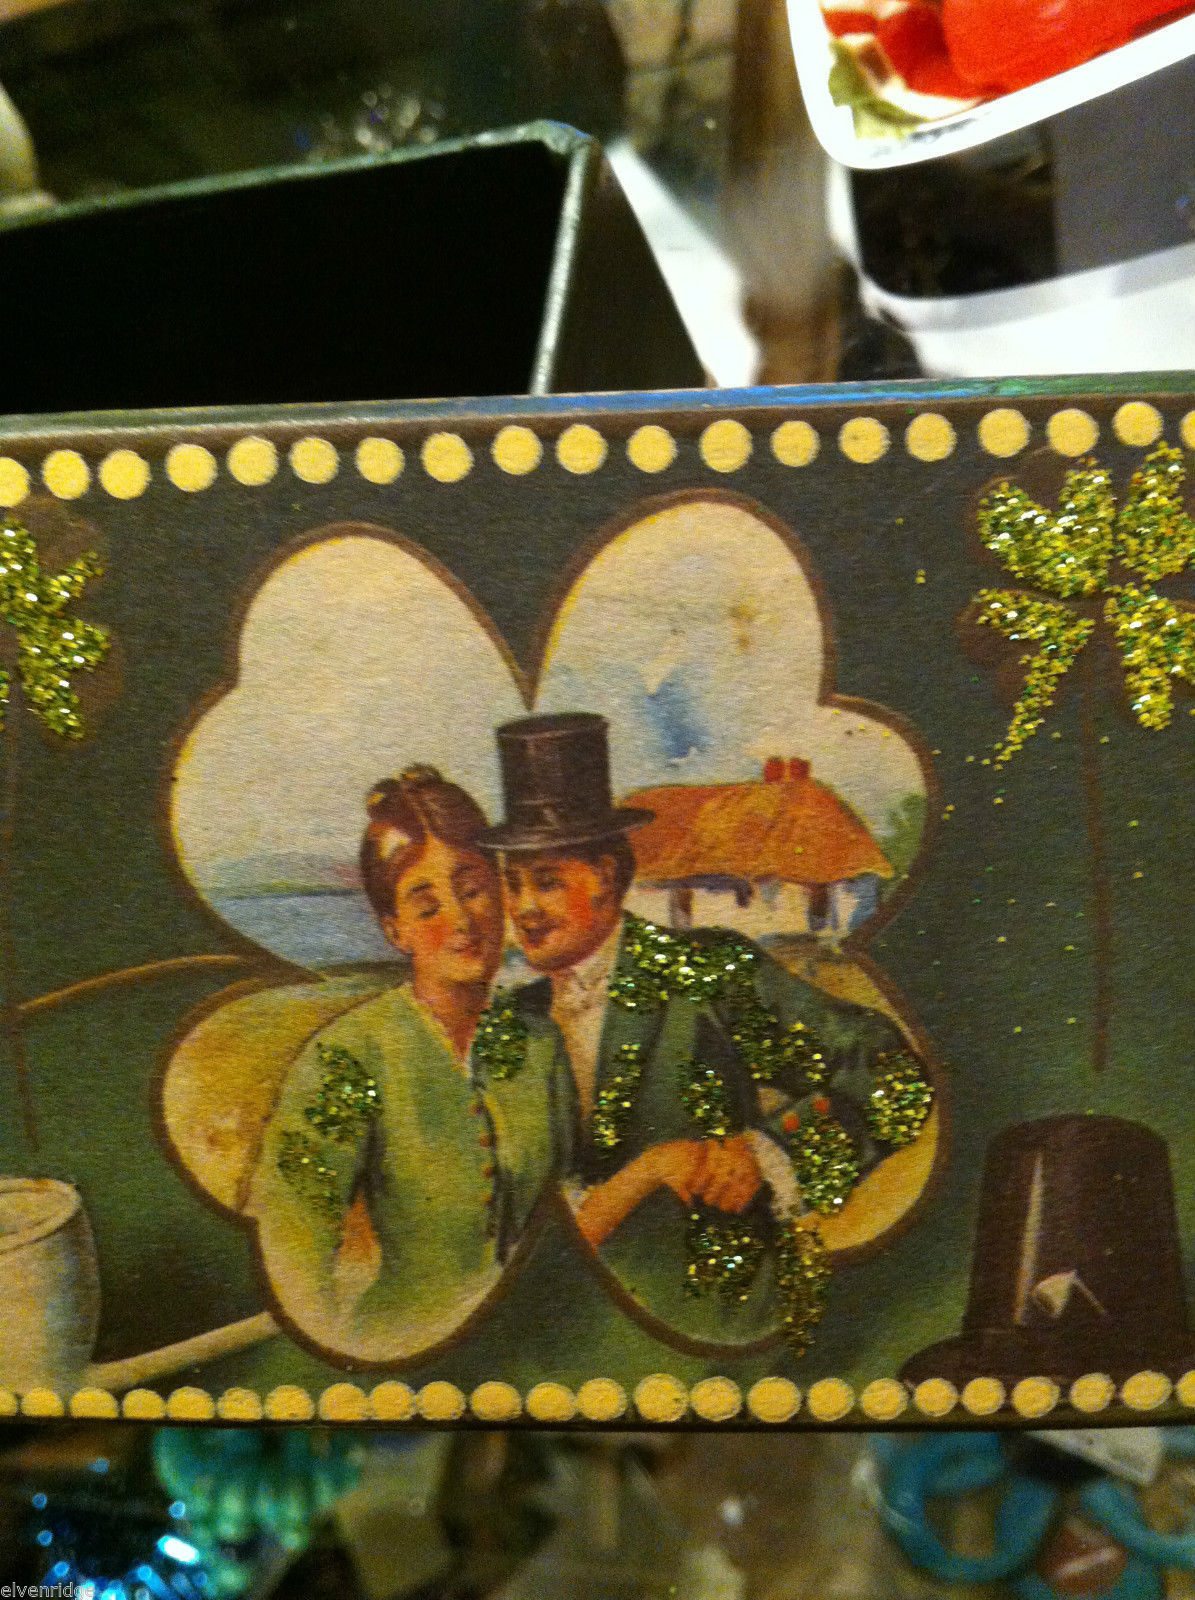 St. Patrick's Day green box glittered with 4 leaf clover Shamrock & Irish couple